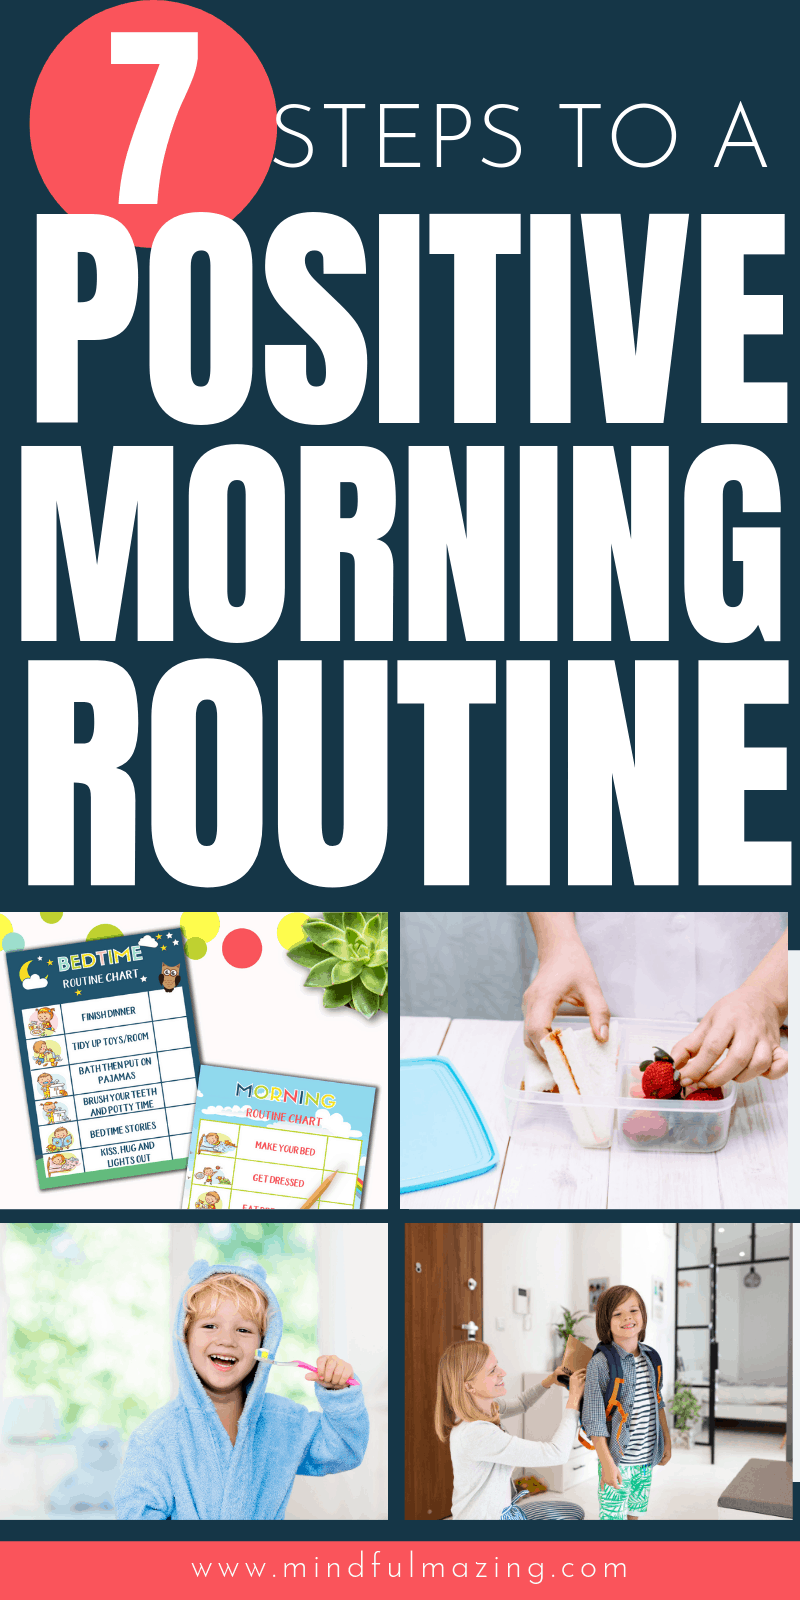 Stress-free morning routine for kids